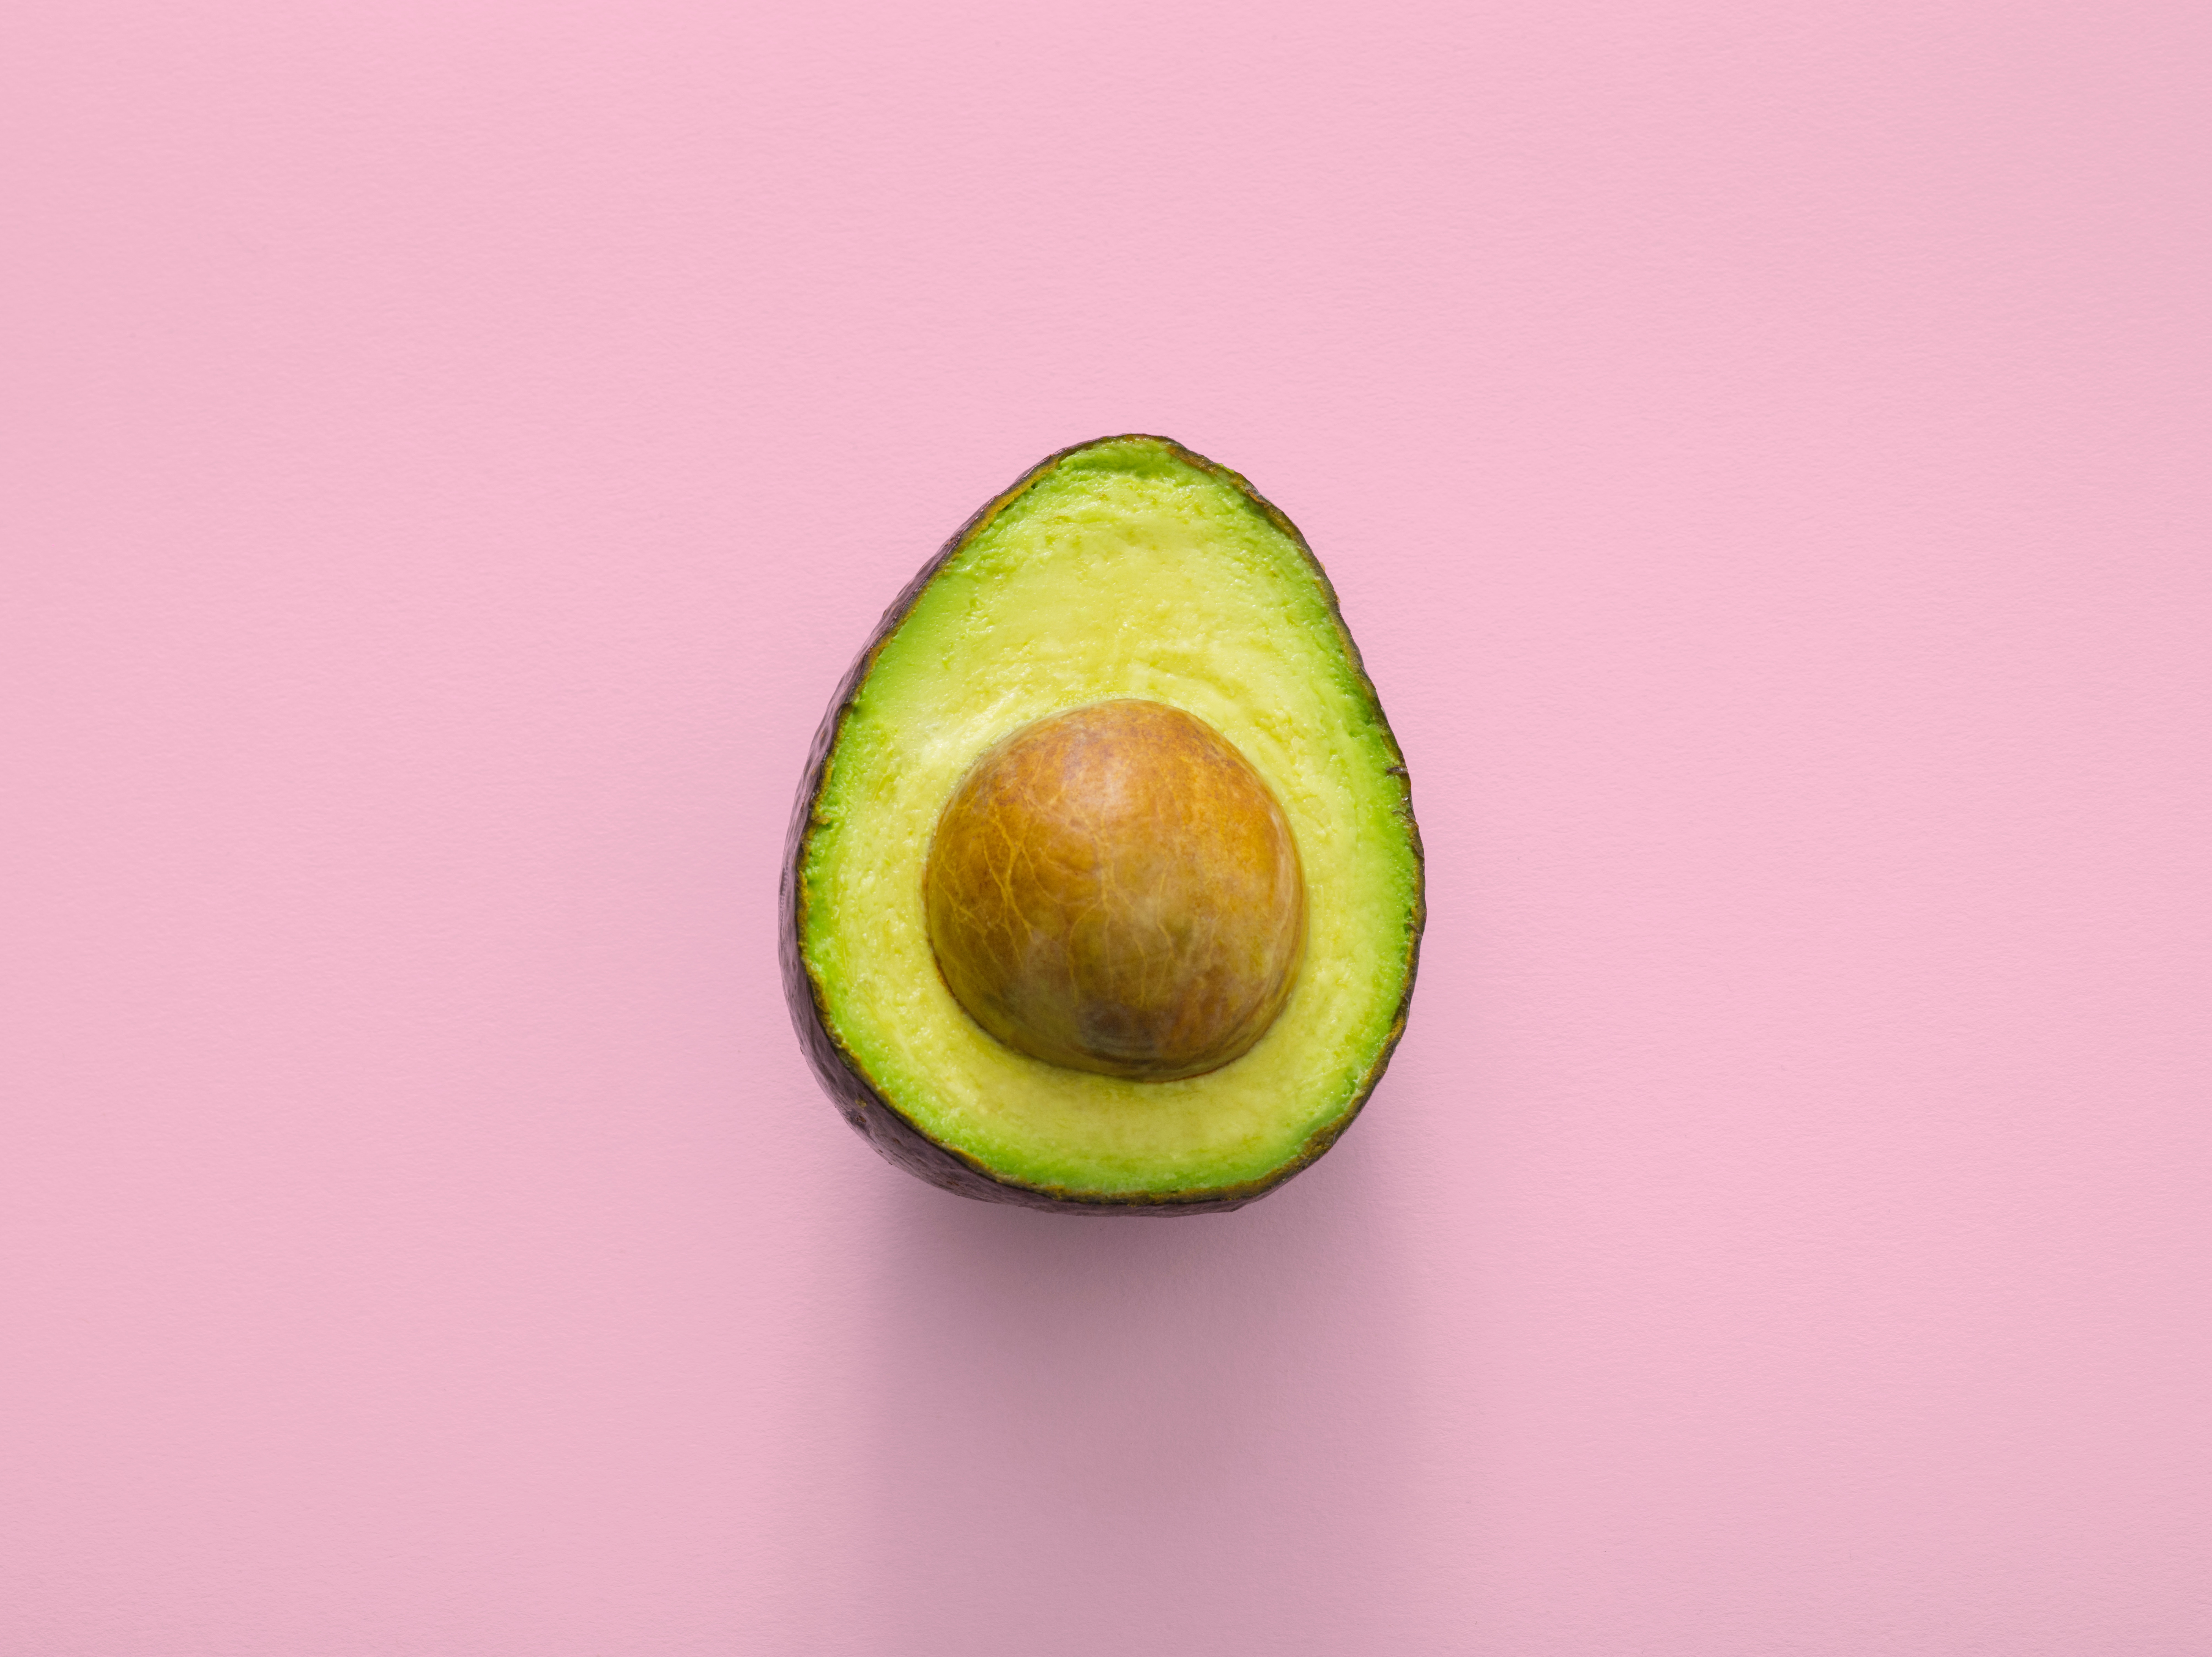 What Are Health Benefits Of Avocado?